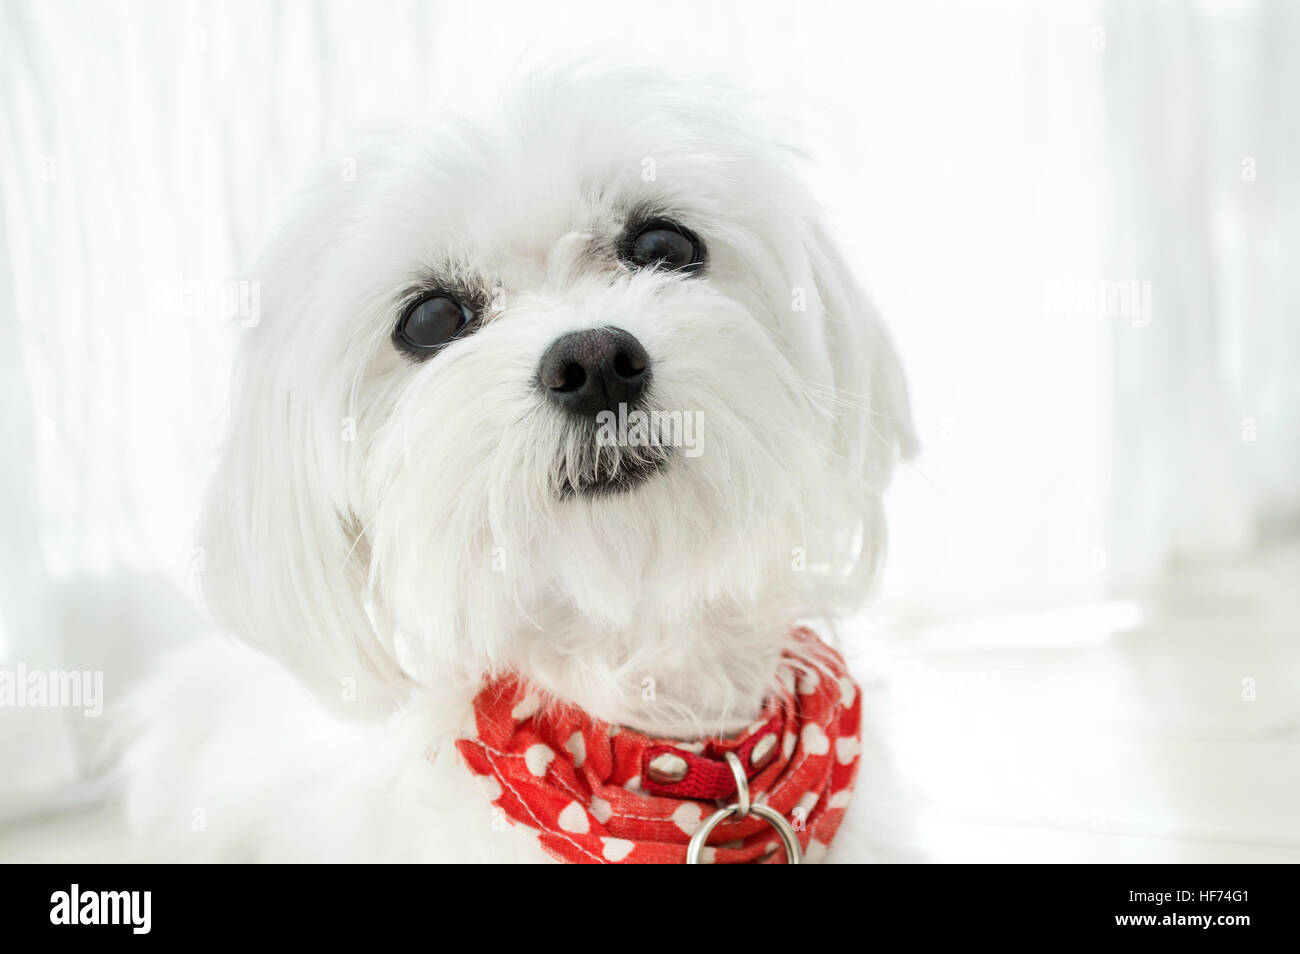 kleiner wei er hund mit rotem halsband stockfoto bild 129849665 alamy. Black Bedroom Furniture Sets. Home Design Ideas